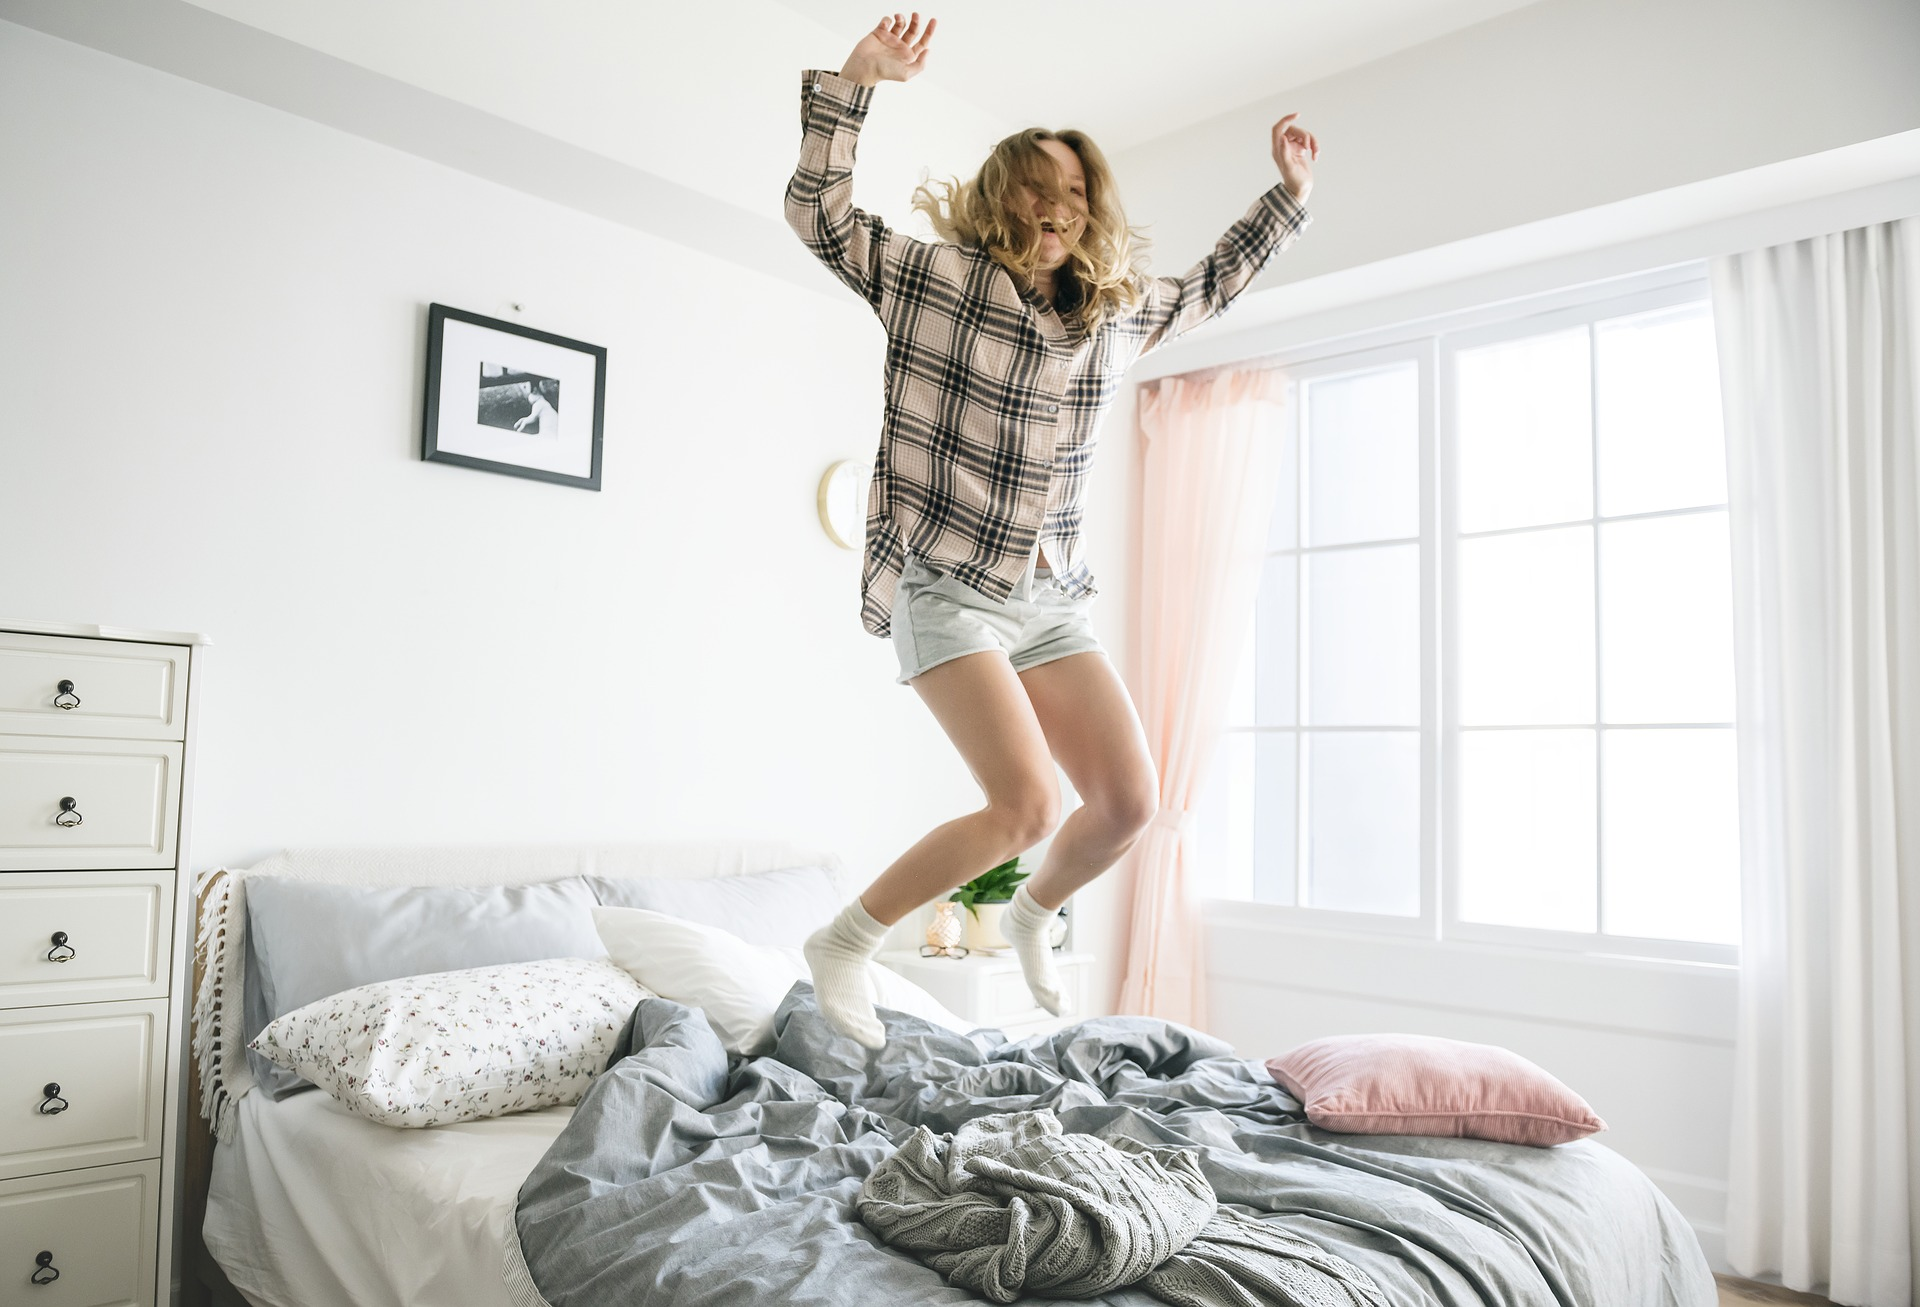 Woman in flannel shirt jumping on unmade bed